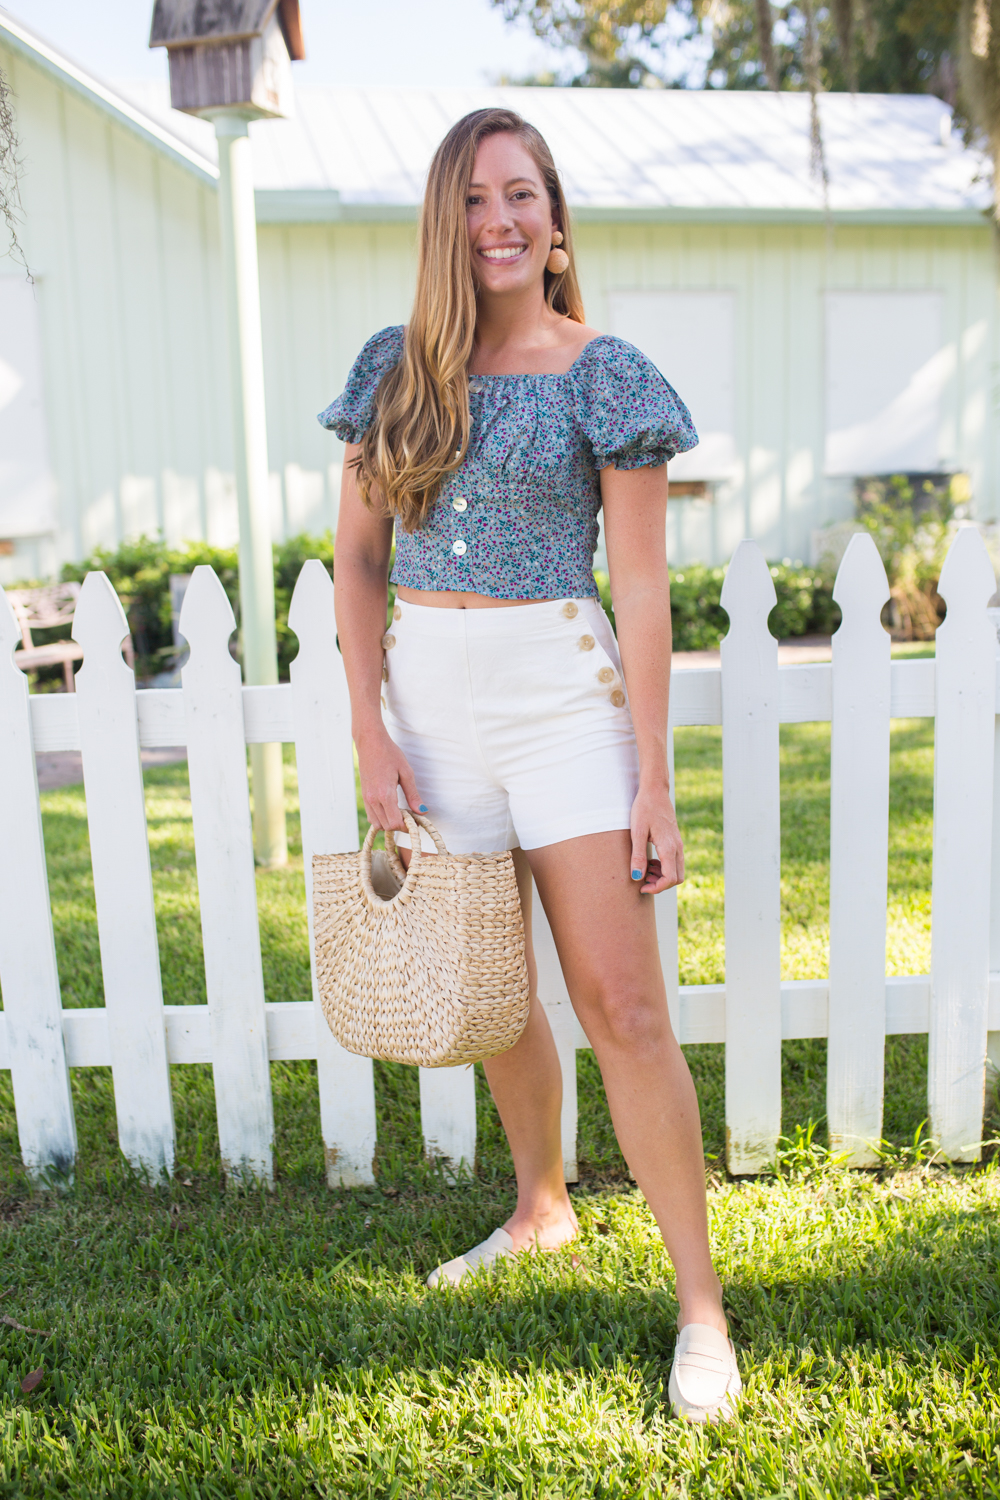 Puff Sleeve Floral Top / Summer Outfit Inspiration / Pretty Outfit / Preppy Style / Classic White Shorts / Sailor Style / Casual Summer Outfit - Sunshine Style, A Florida Fashion and Lifestyle Blog #preppy #fashion #summer #summerstyle #summeroutfit #coastal